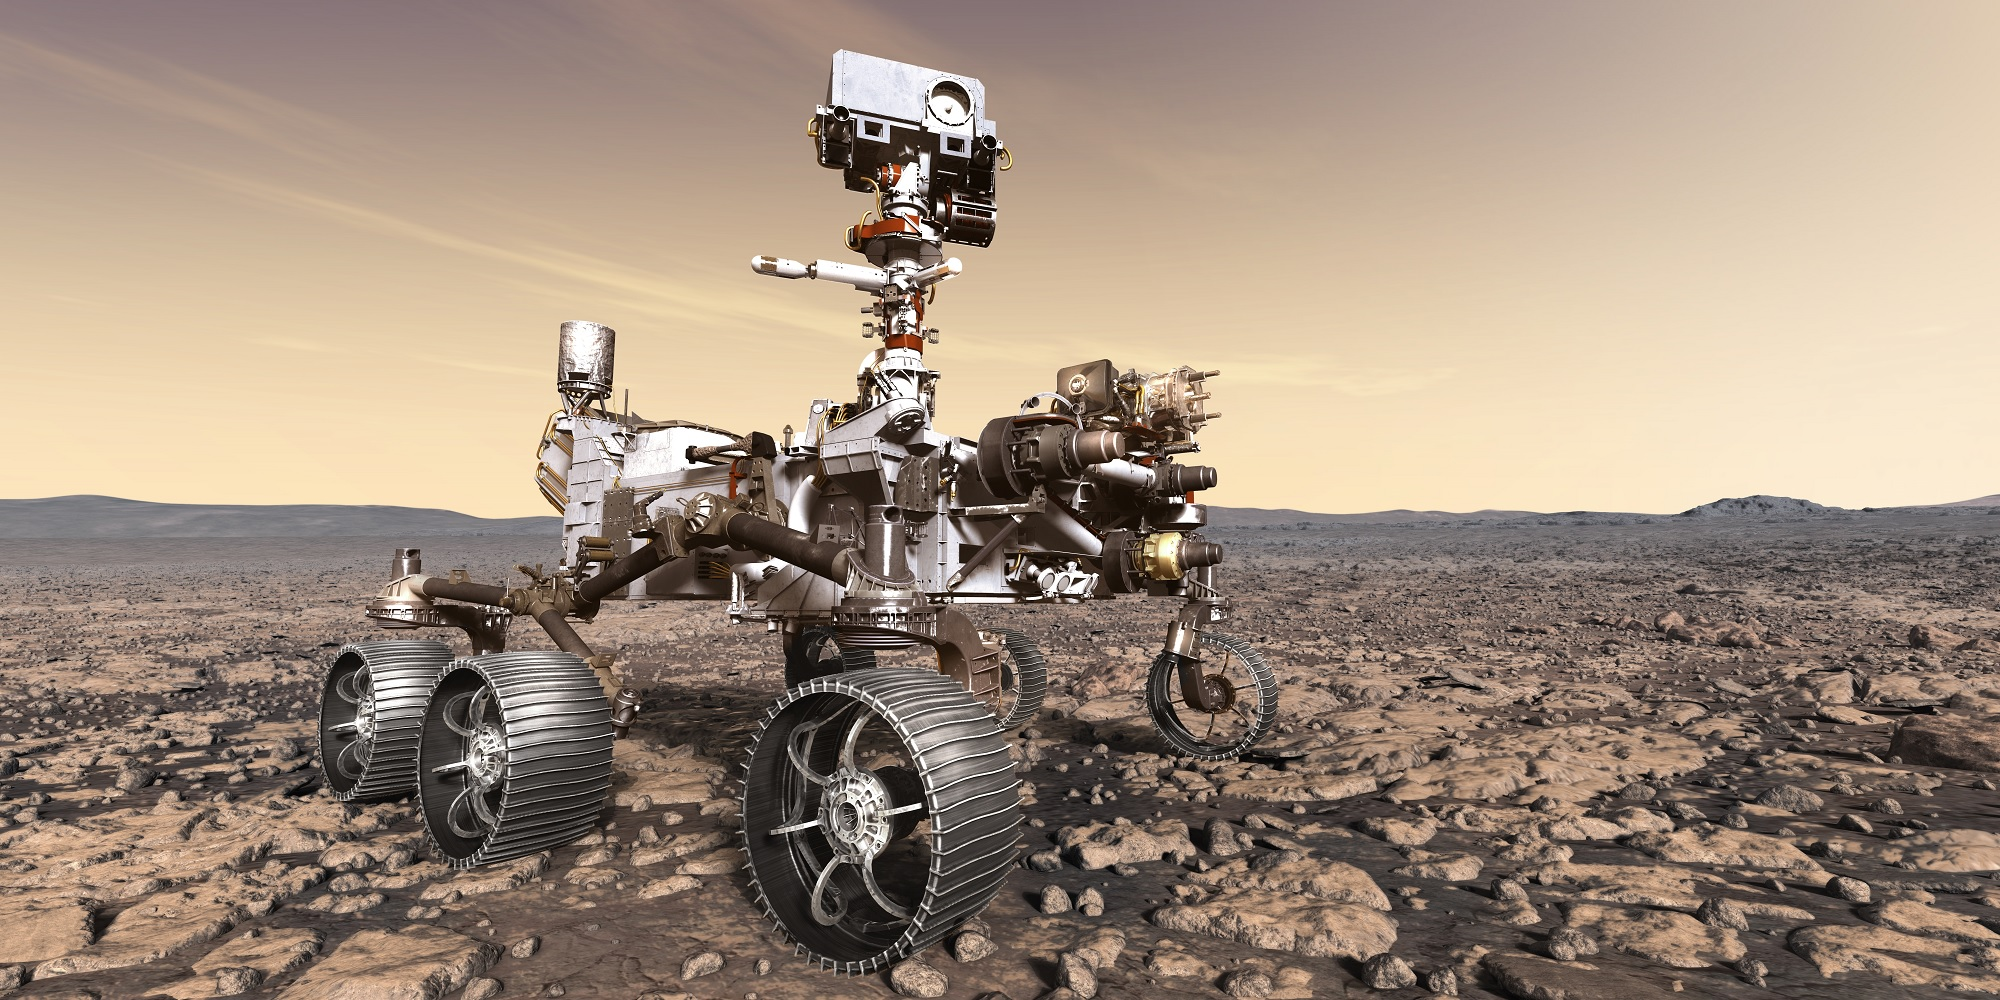 NASA Launches Perseverance Rover to Investigate Life on Mars